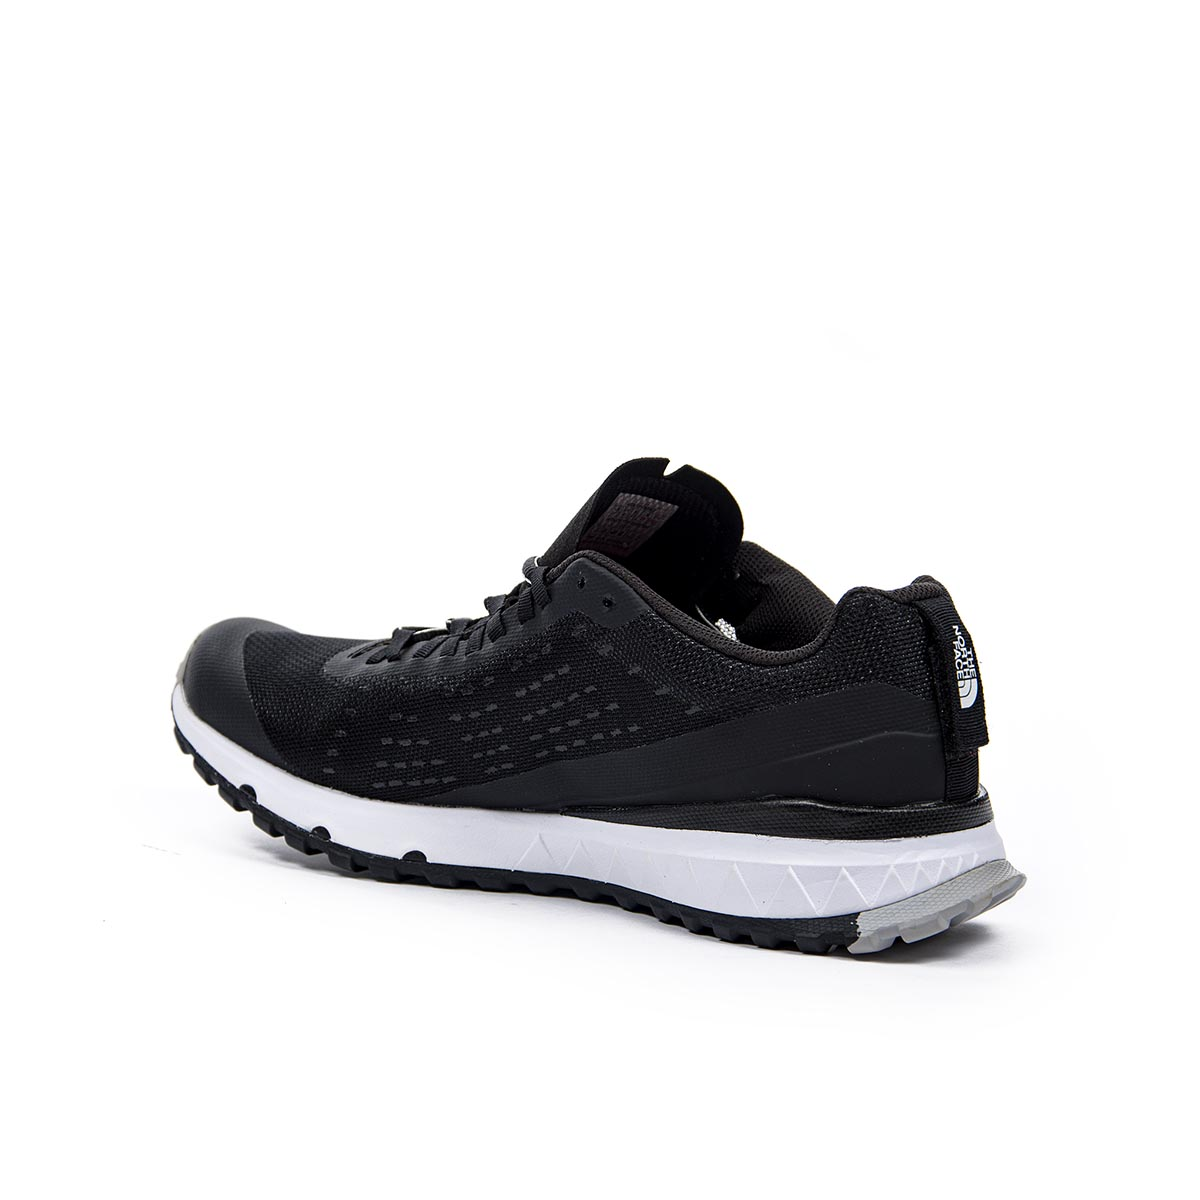 THE NORTH FACE - ULTRA SWIFT TRAIL SHOES